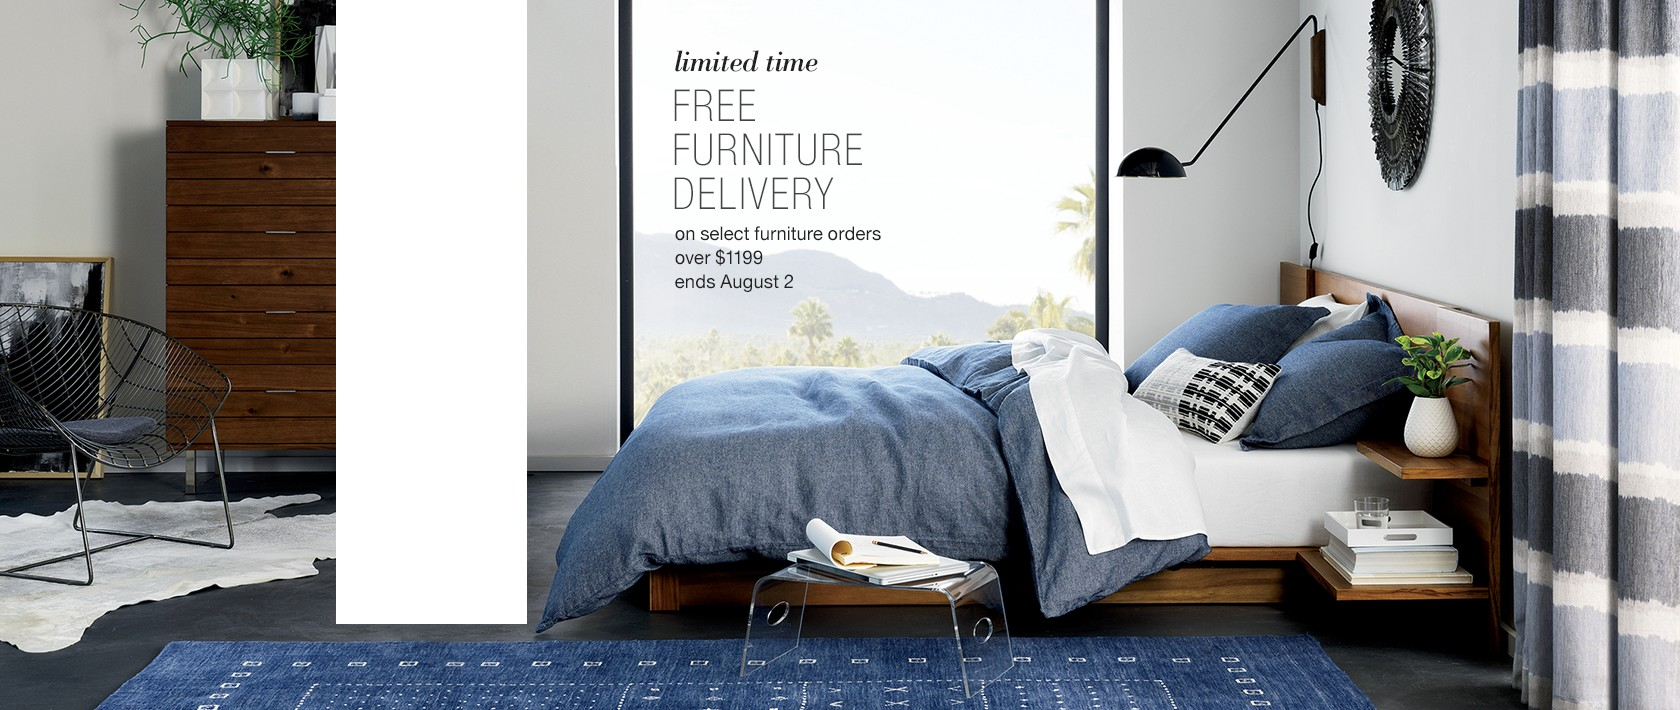 limited time. free furniture delivery. on select furniture orders over $1199. ends August 2